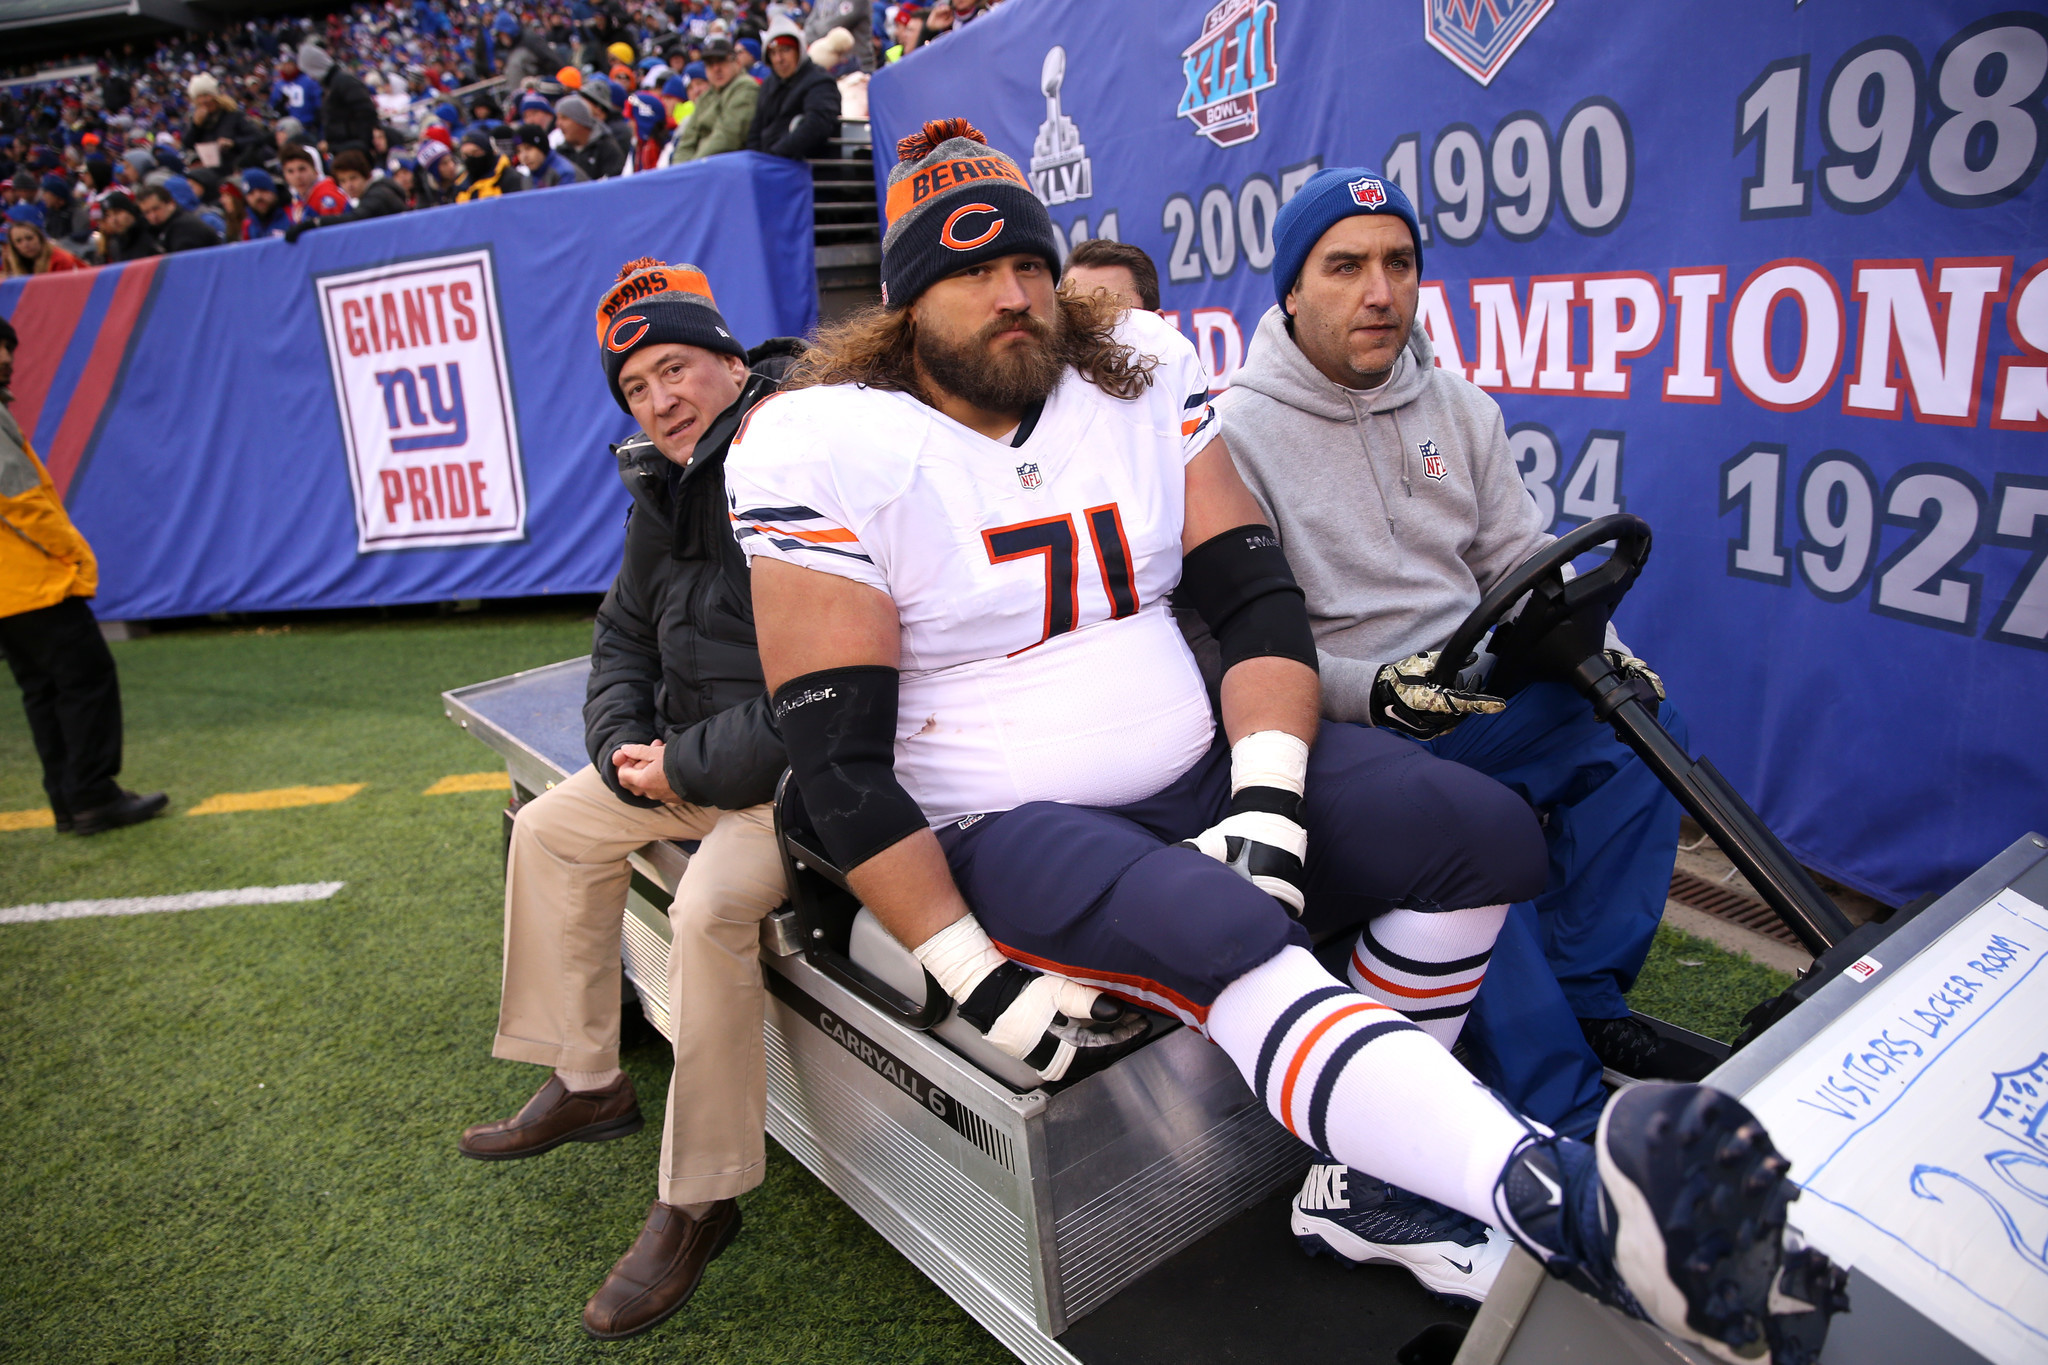 Ct-biggs-bears-injury-essentials-spt-1127-20161126